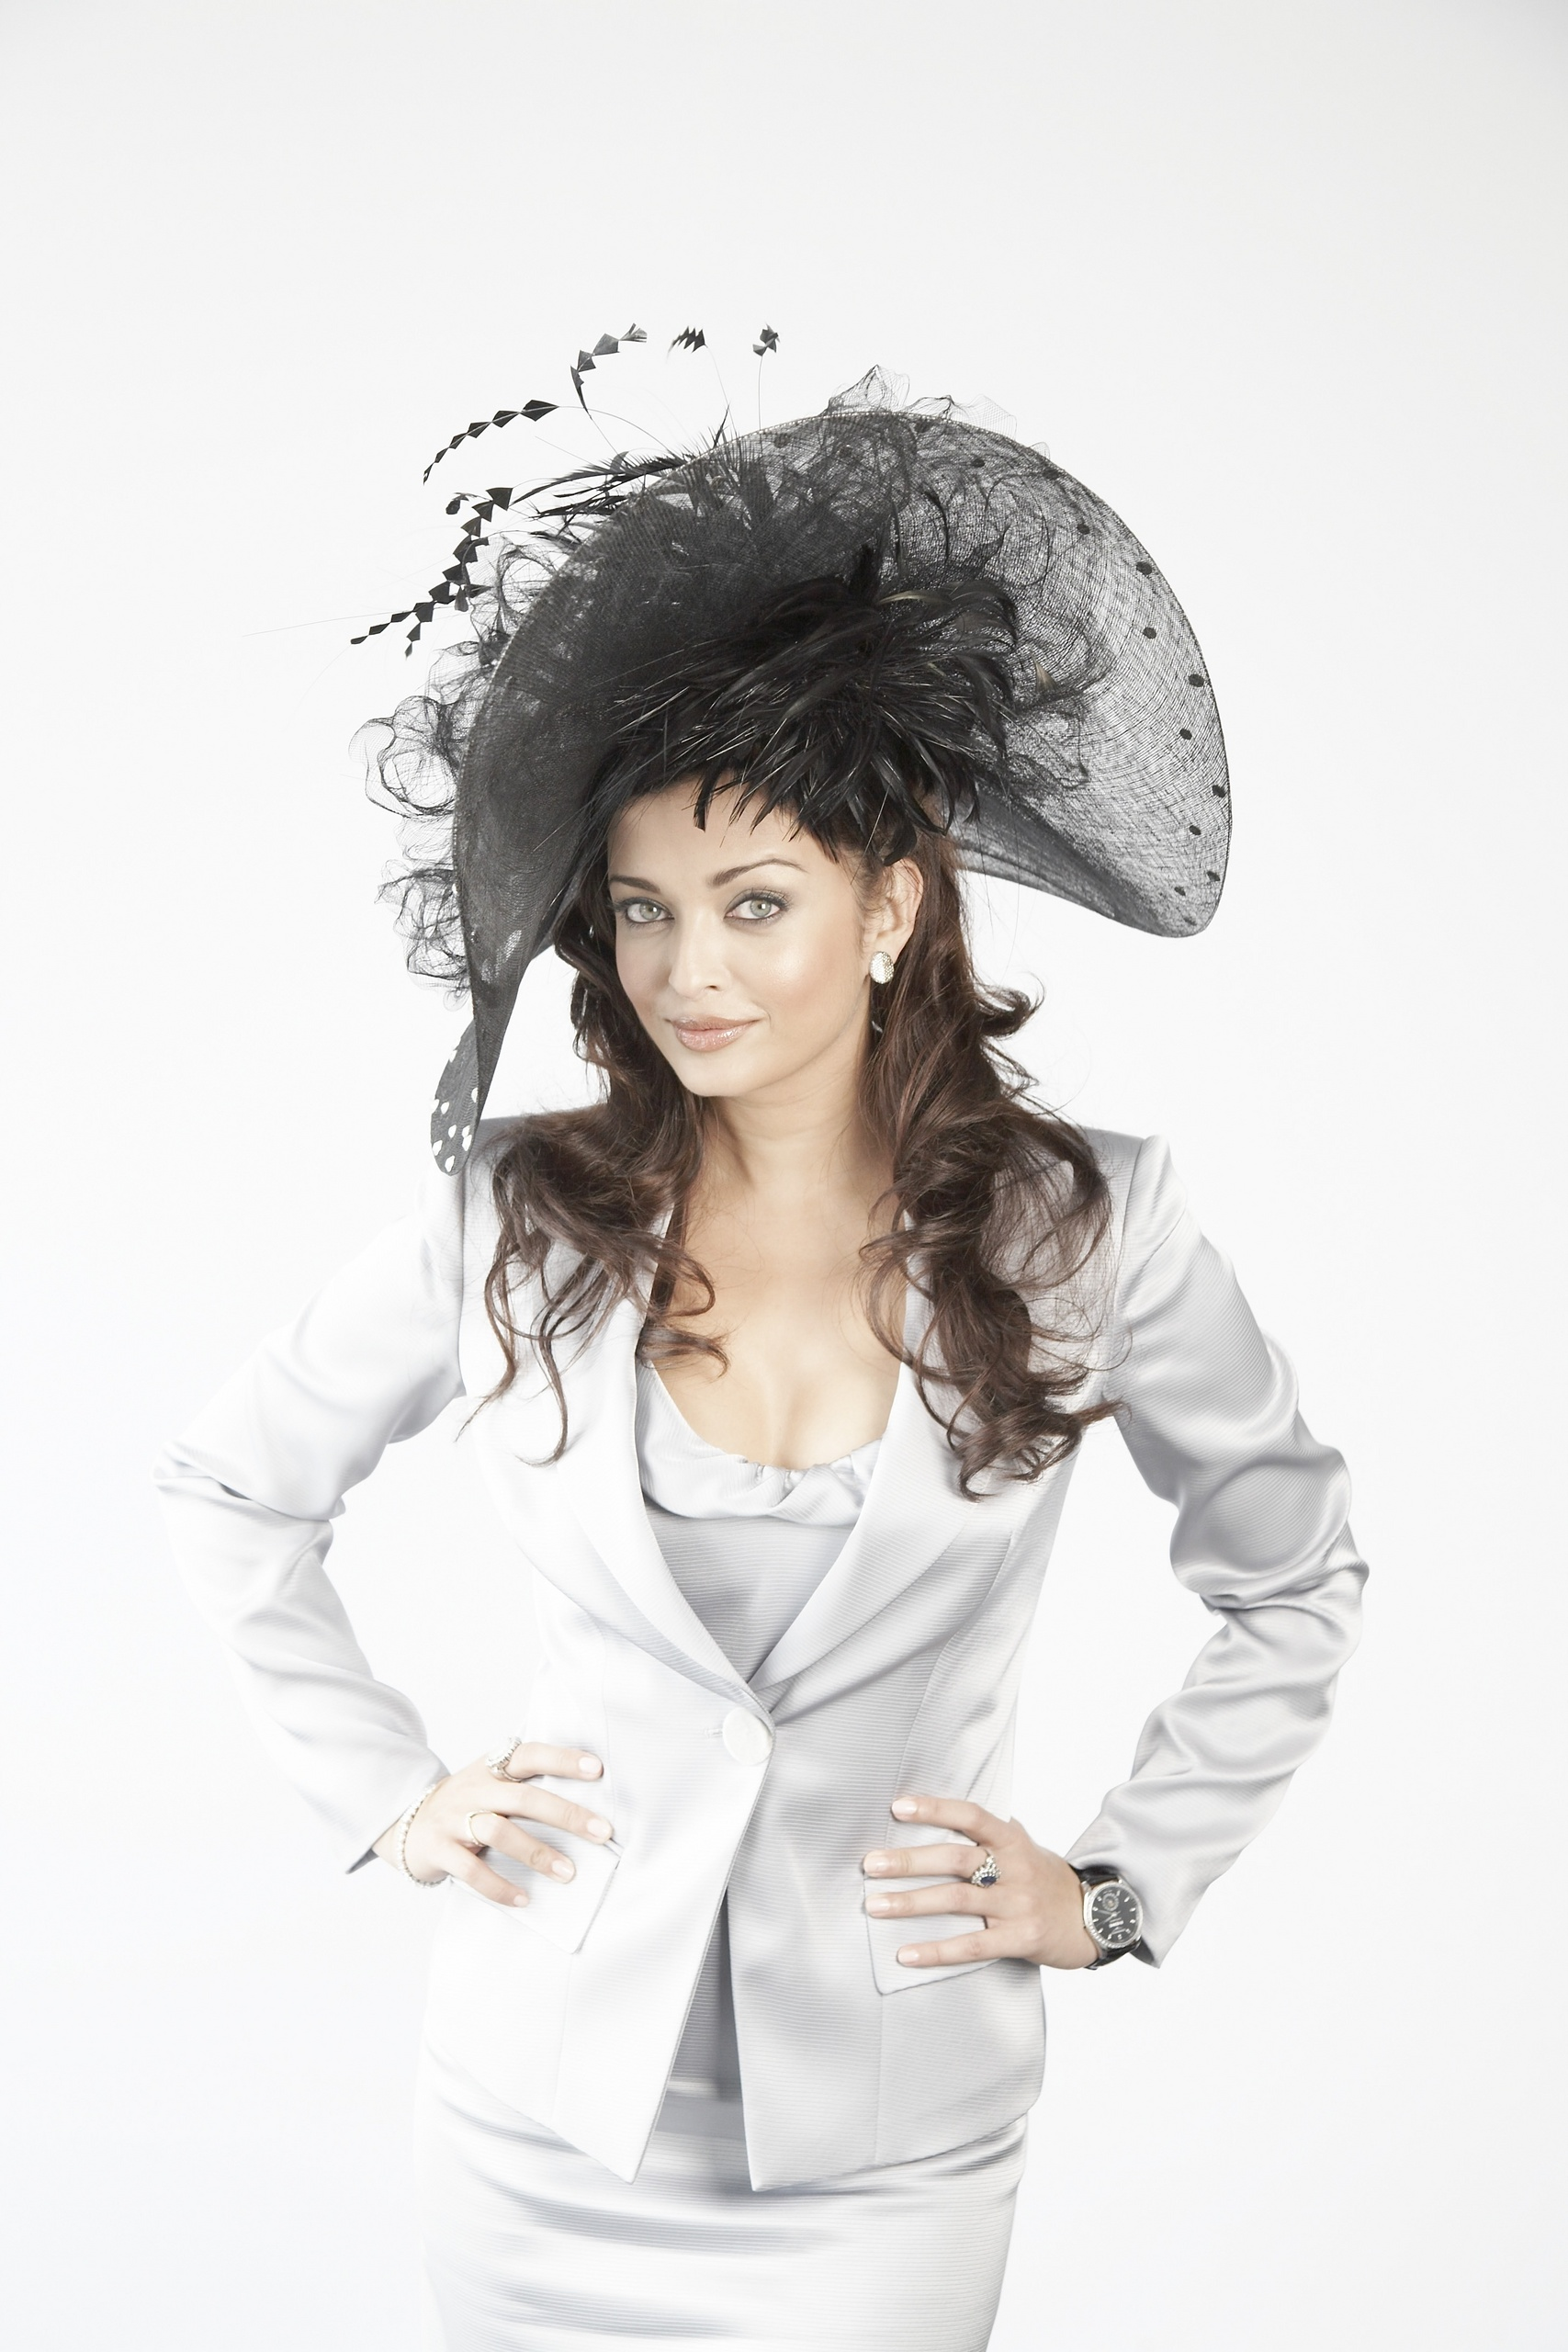 Aishwarya Rai - Photoshoot par Gavin Smith 2009